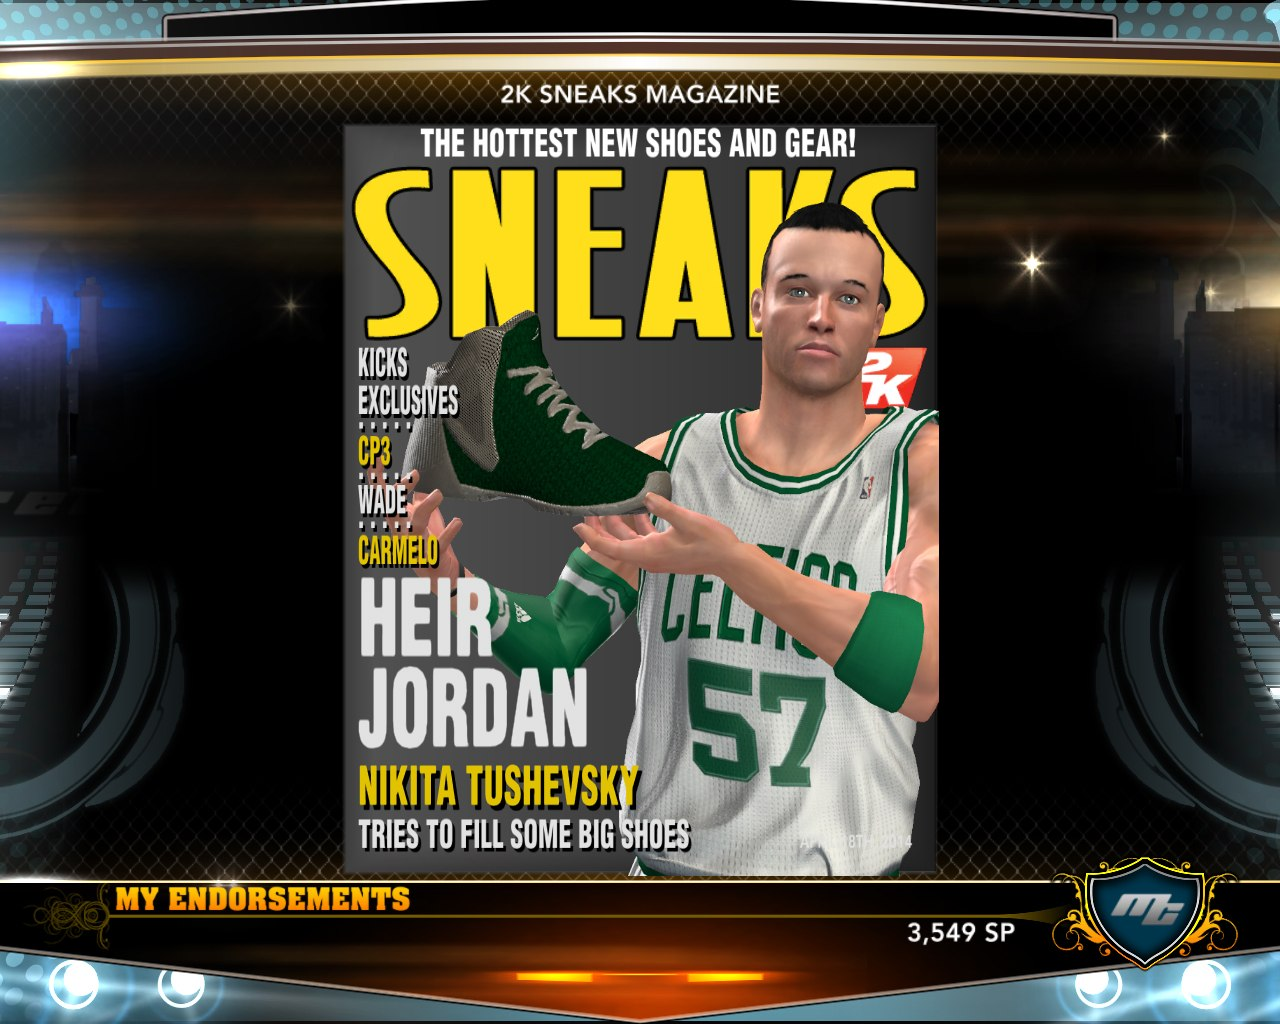 NBA2K13 basketball shoe FIRST MVP FROM KINGNIK